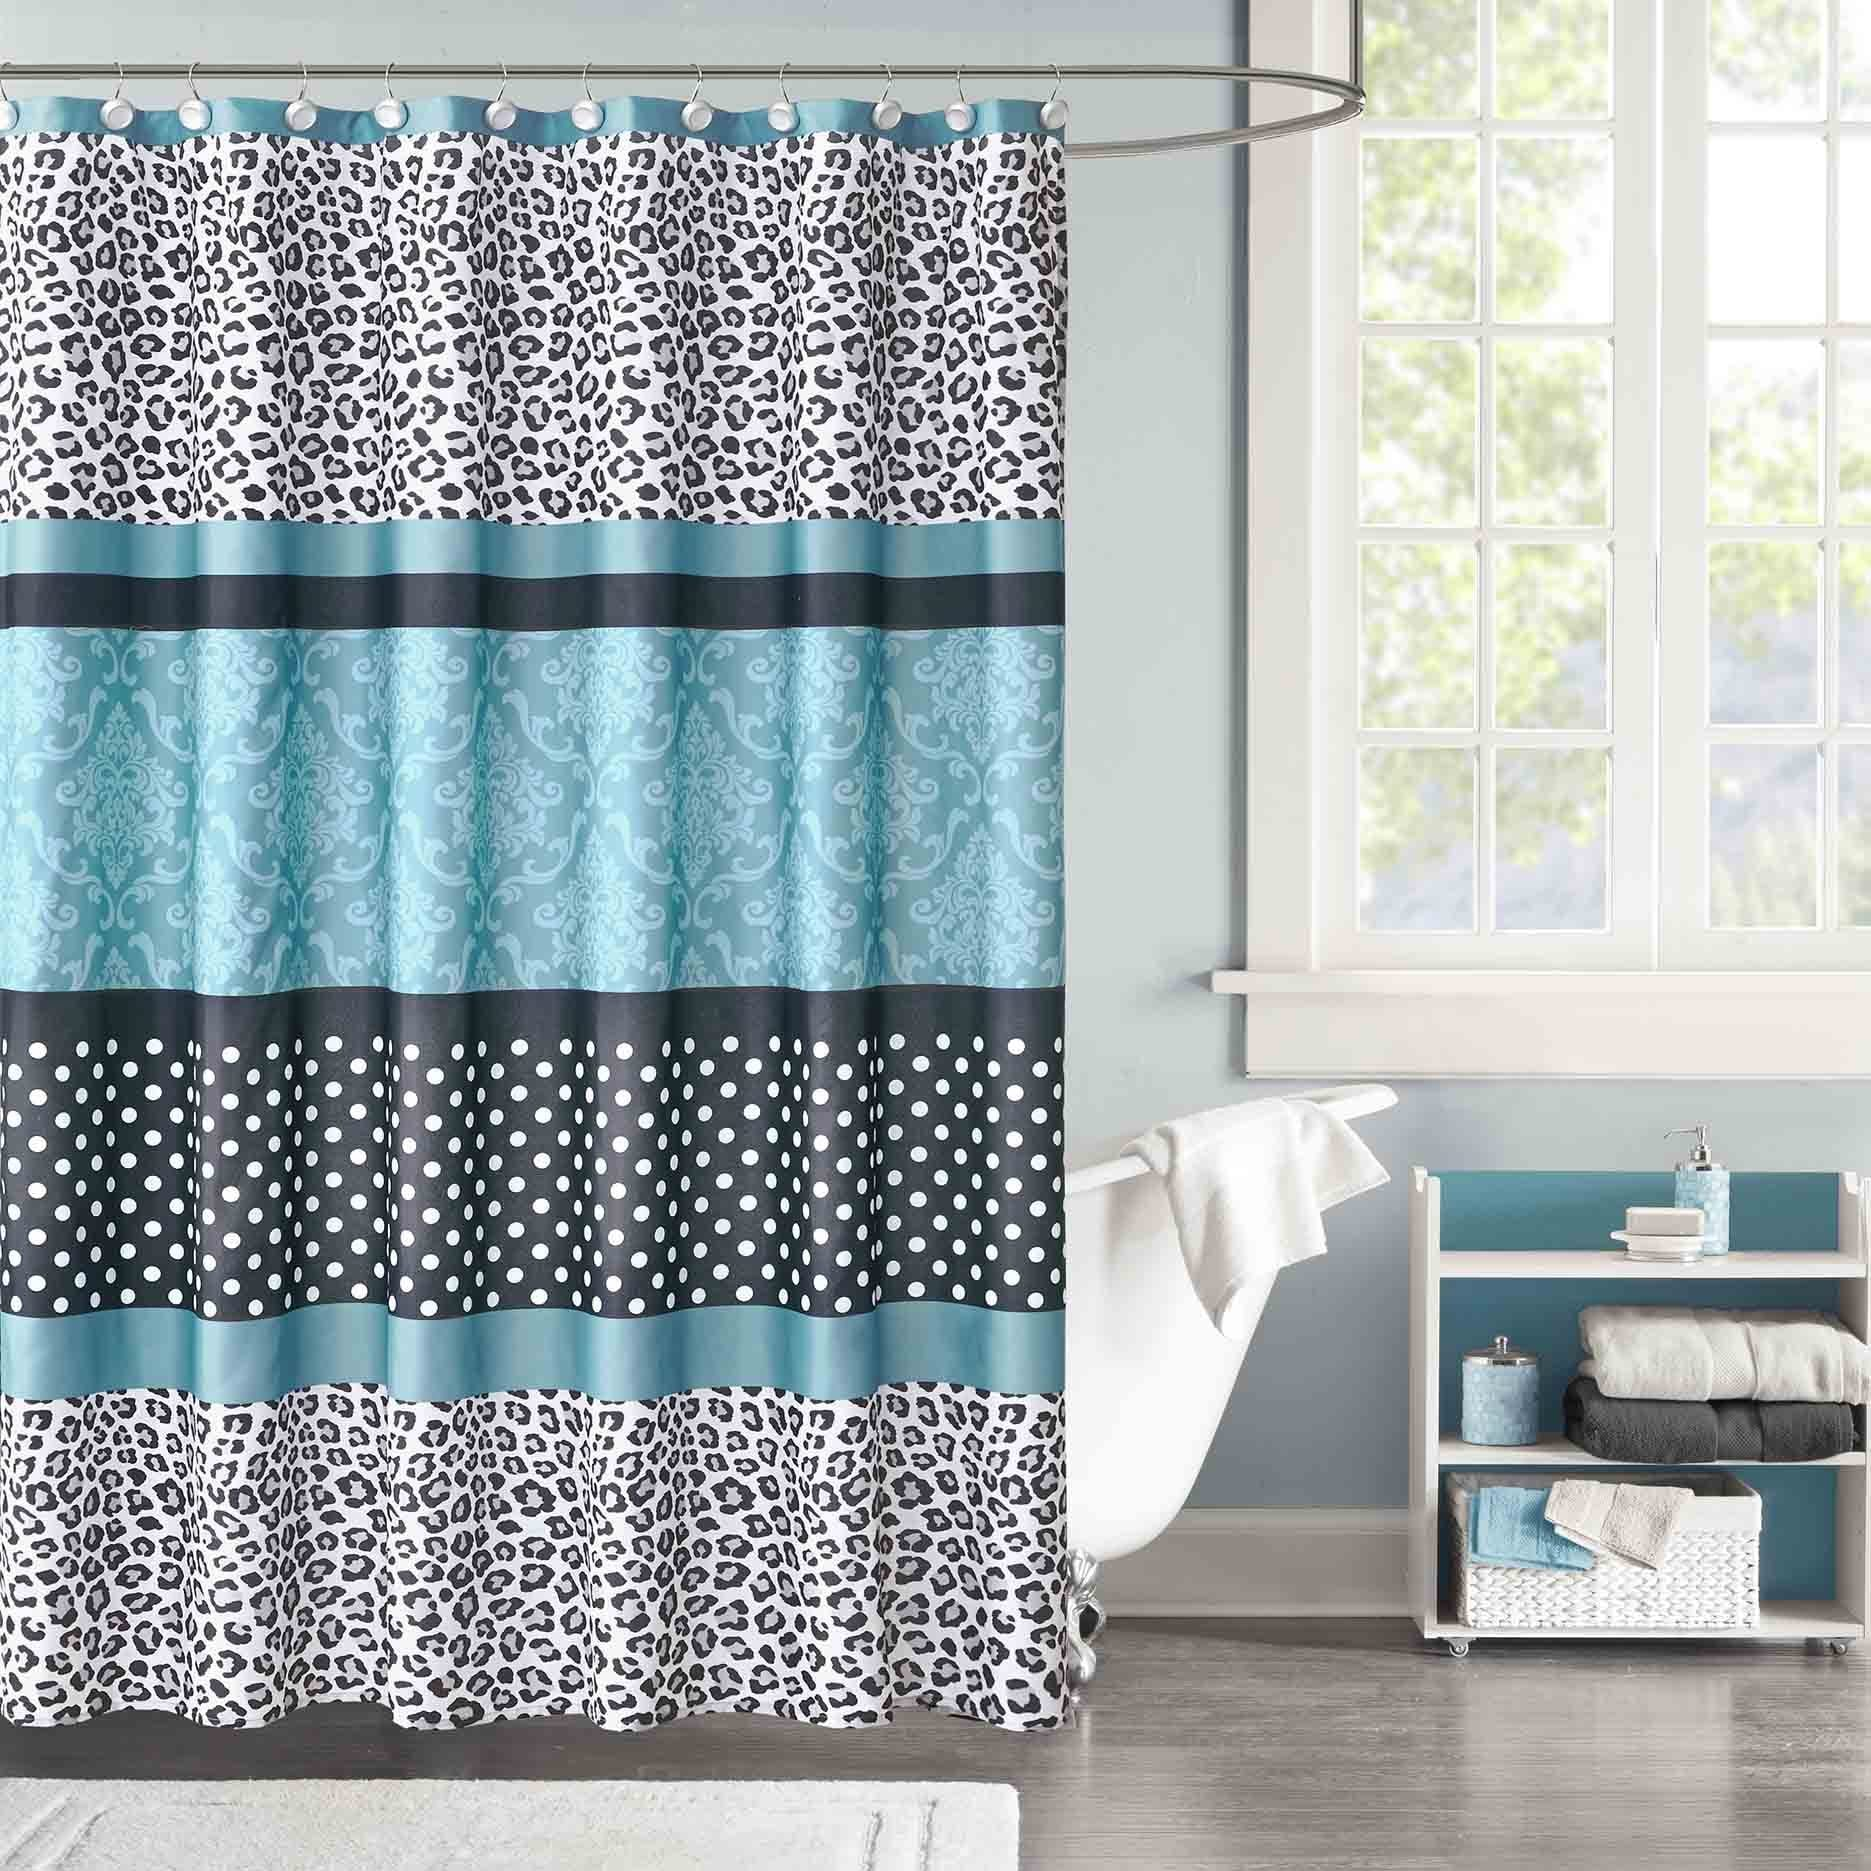 Shop Mi Zone Camille Teal Microfiber Shower Curtain - On Sale - Free ...